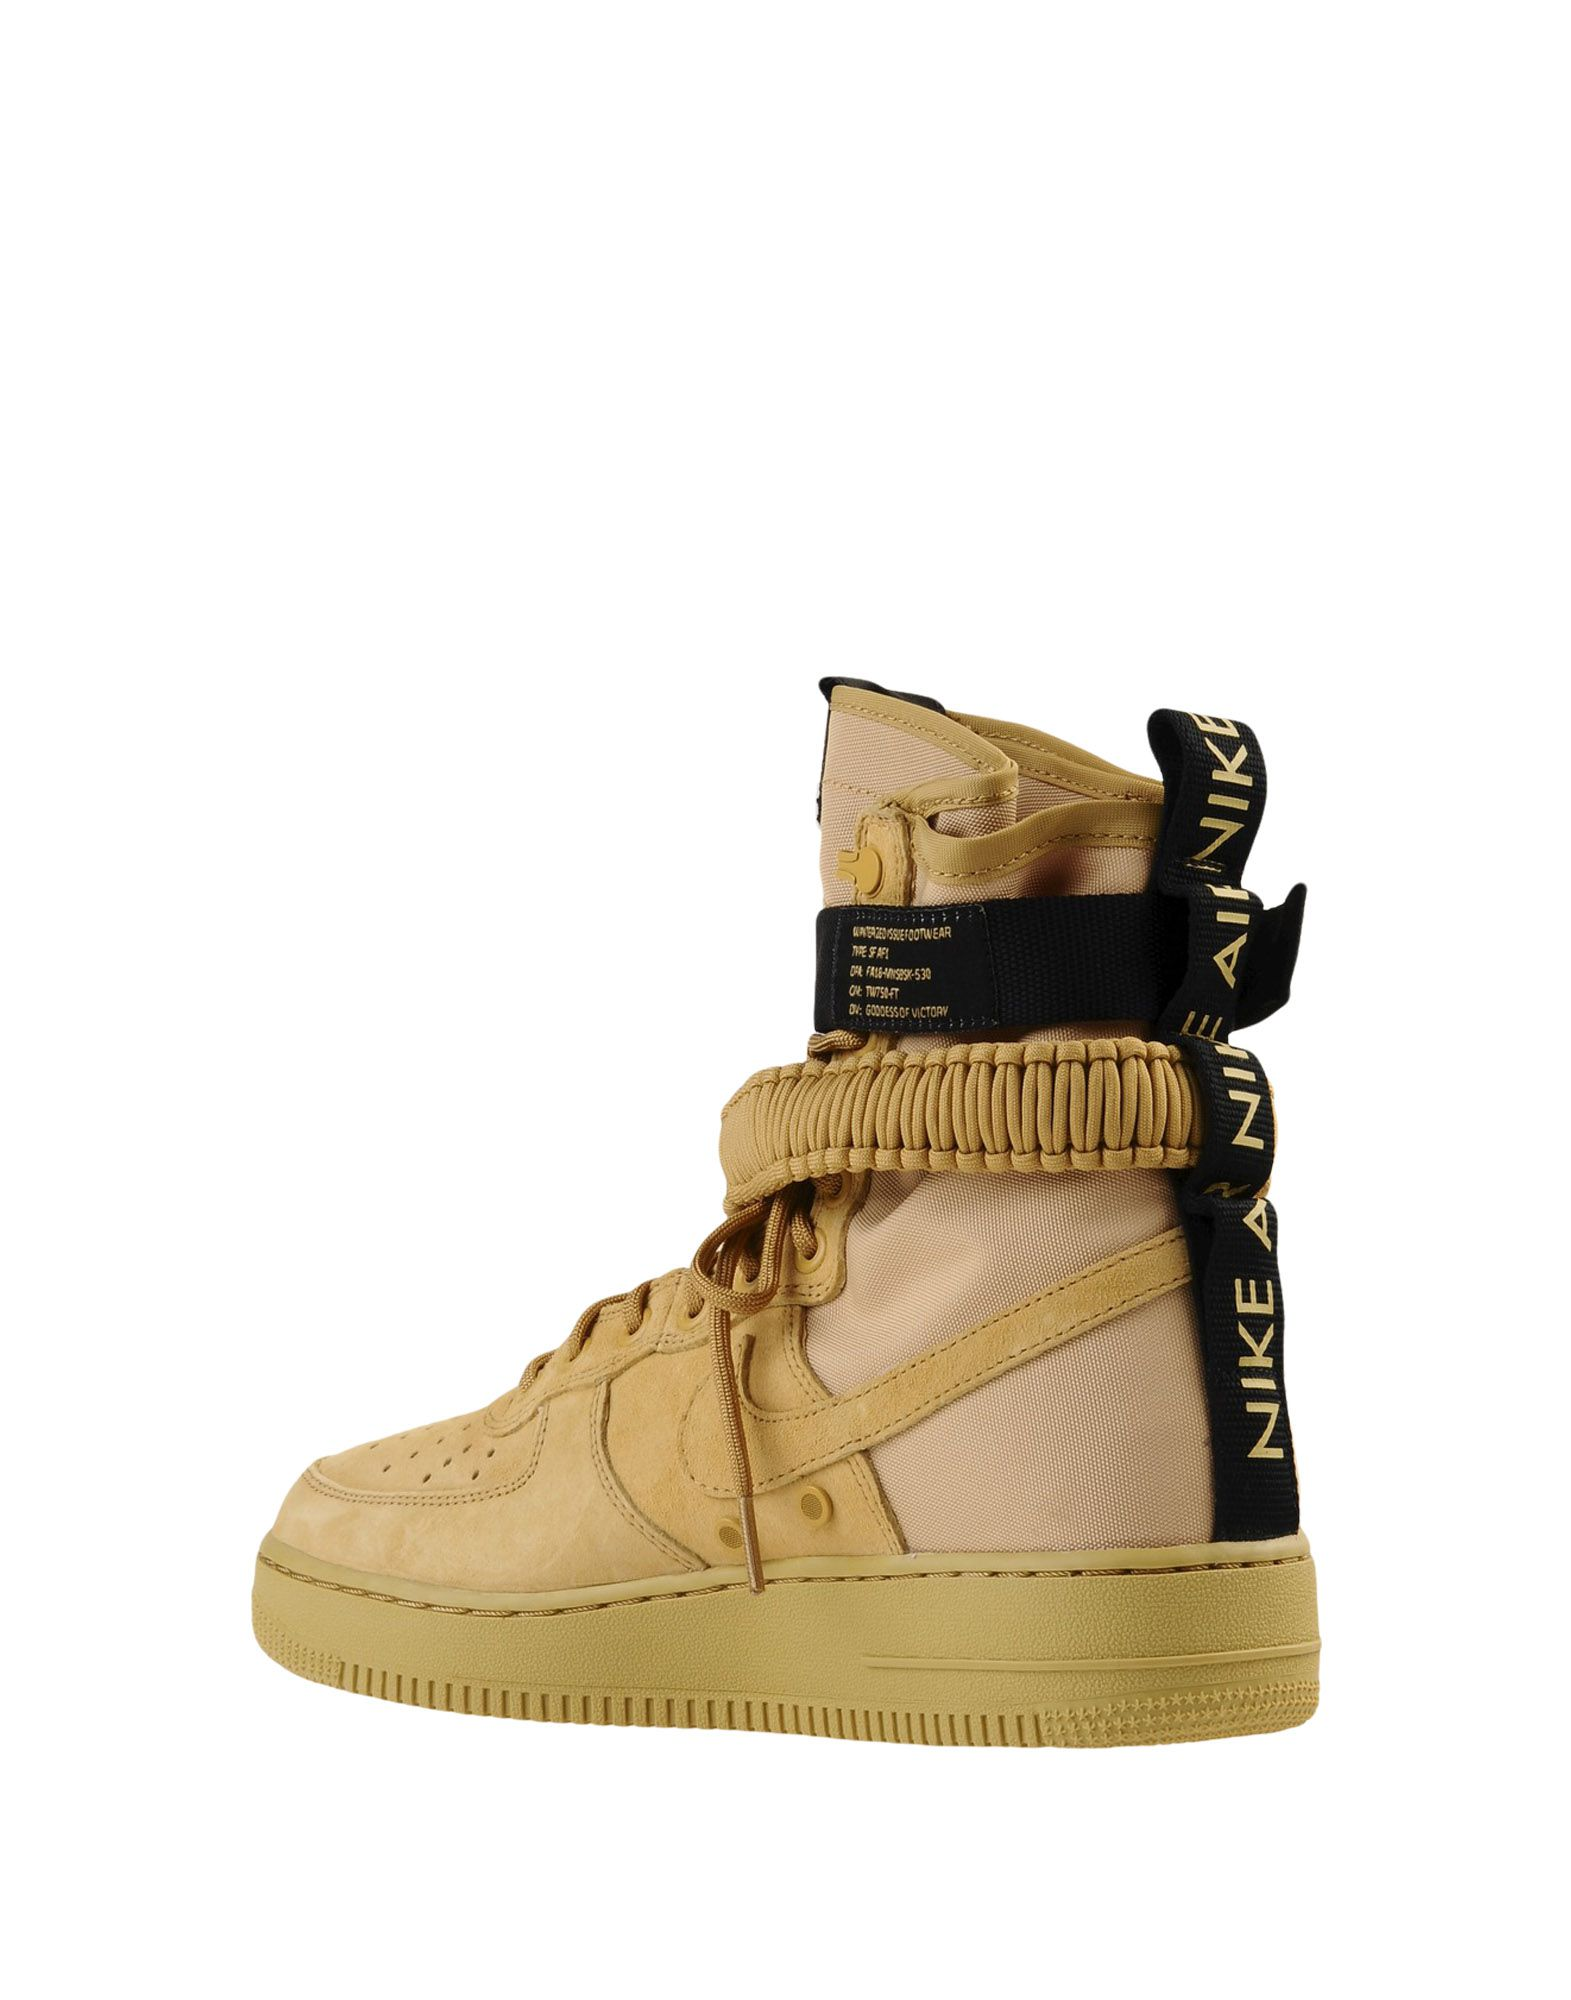 Nike Sf Af1 - Sneakers Sneakers Sneakers - Men Nike Sneakers online on  United Kingdom - 11572099QB 00635b